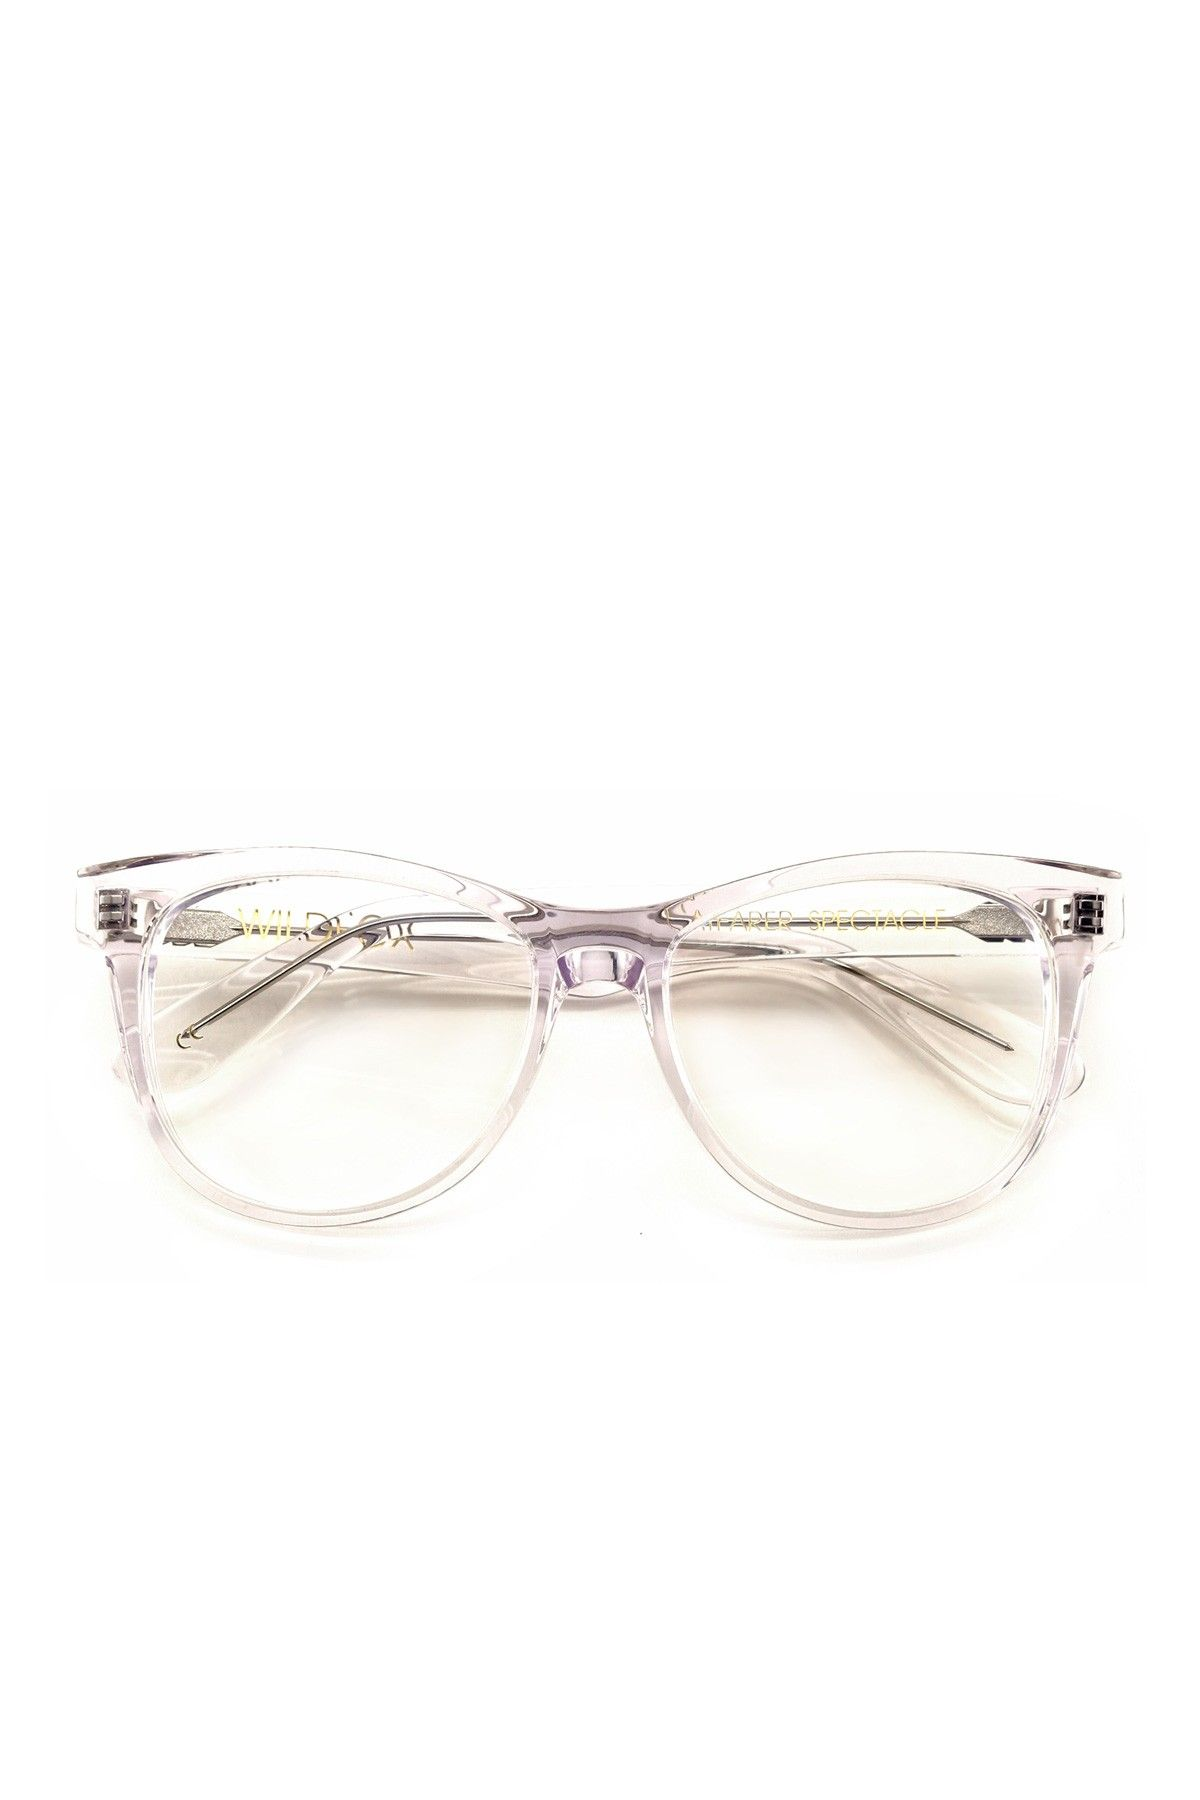 ee5e3d3638 jewelry accessories: daniellieee123 ✧ Gafas Mujer, Lentes Mujer, Chicas Con  Gafas,